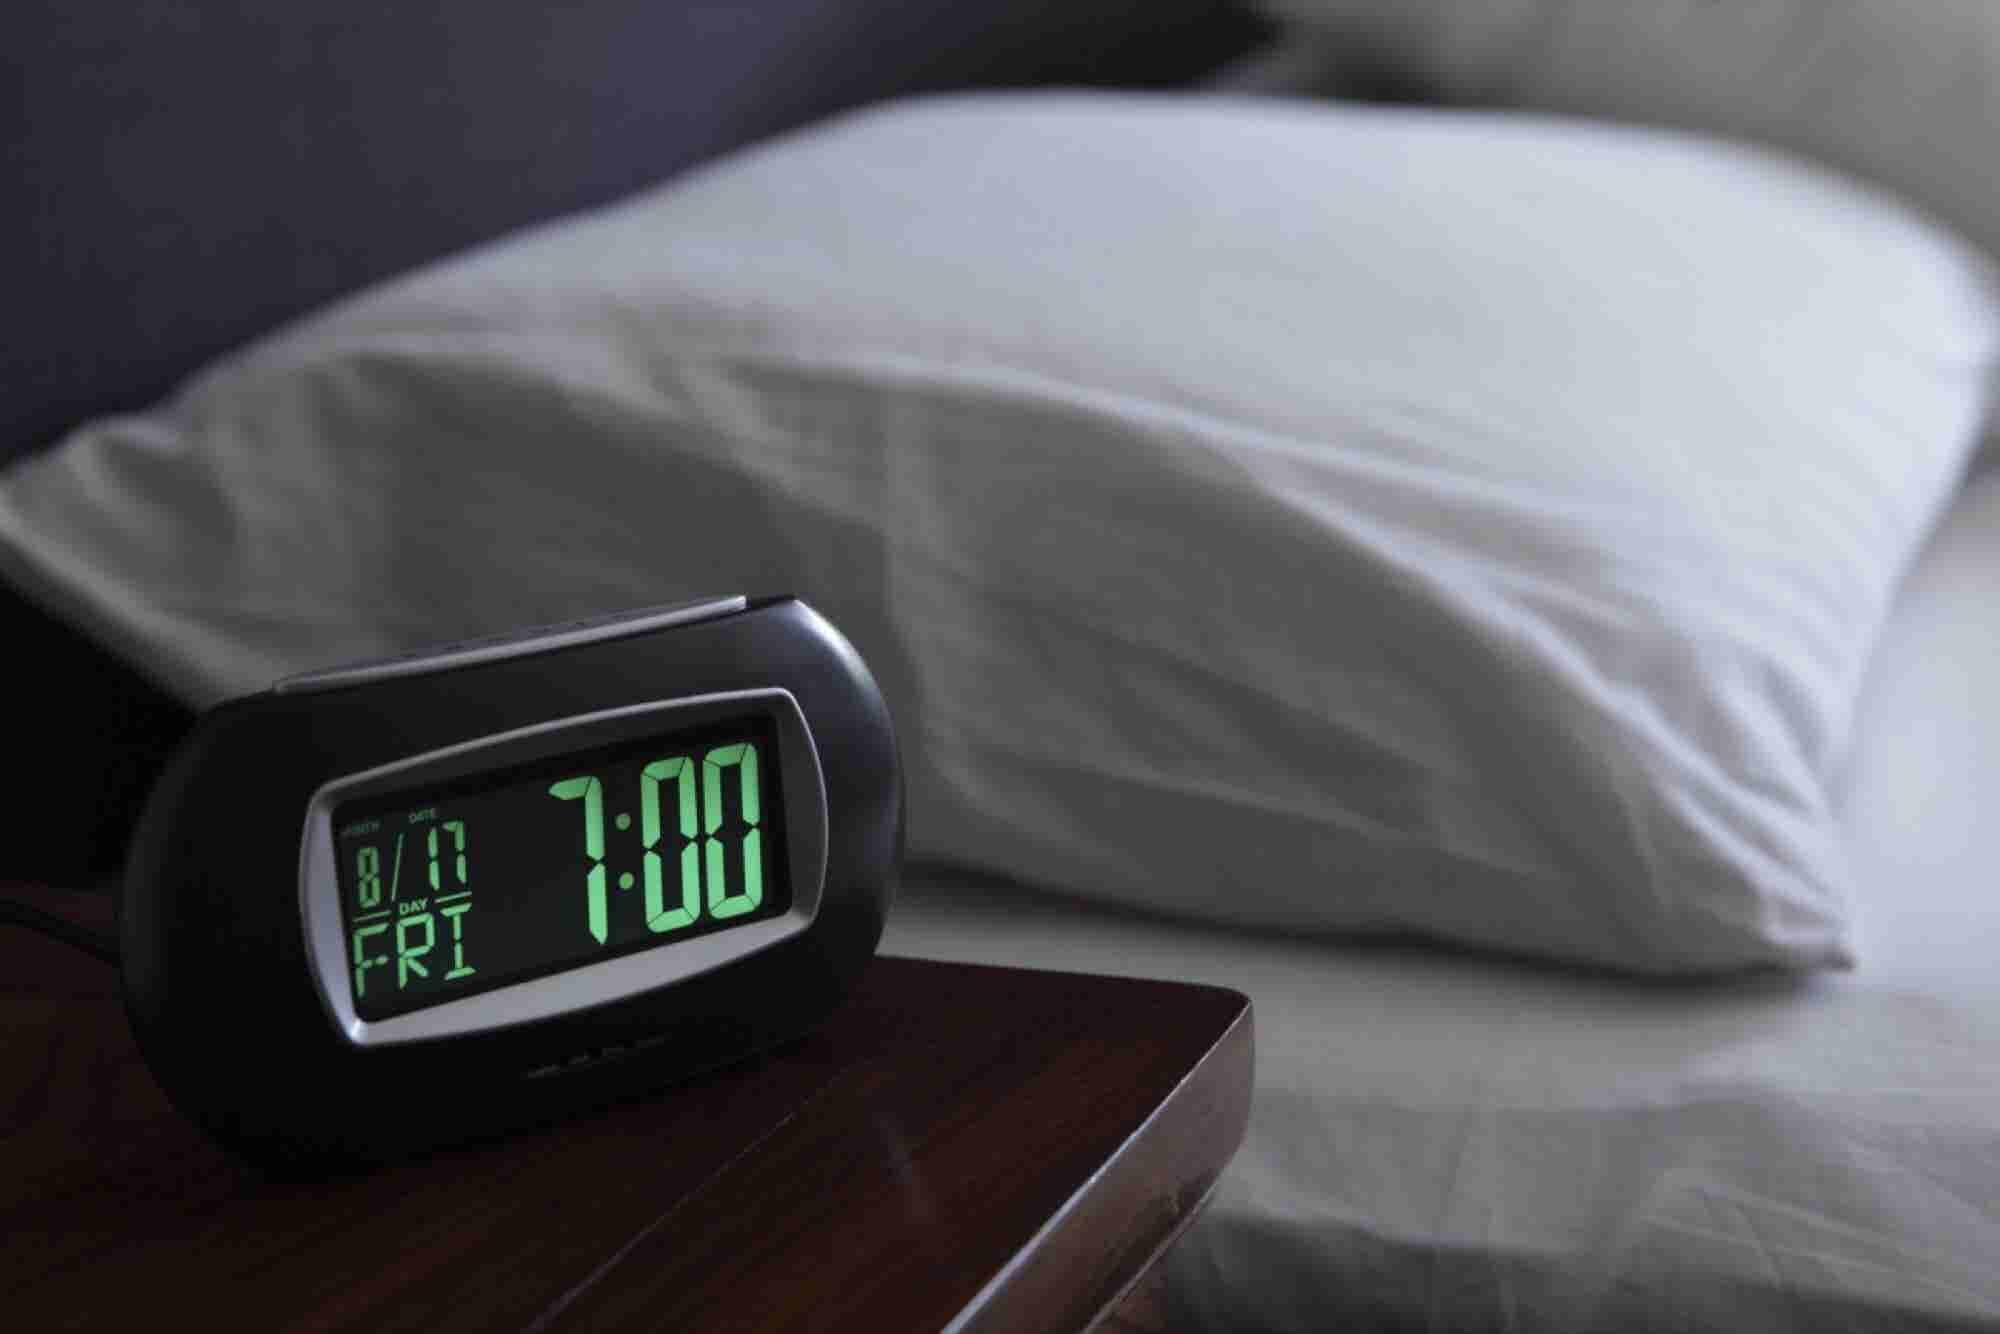 7 Things Every Entrepreneur Should Do Before 7 a.m.